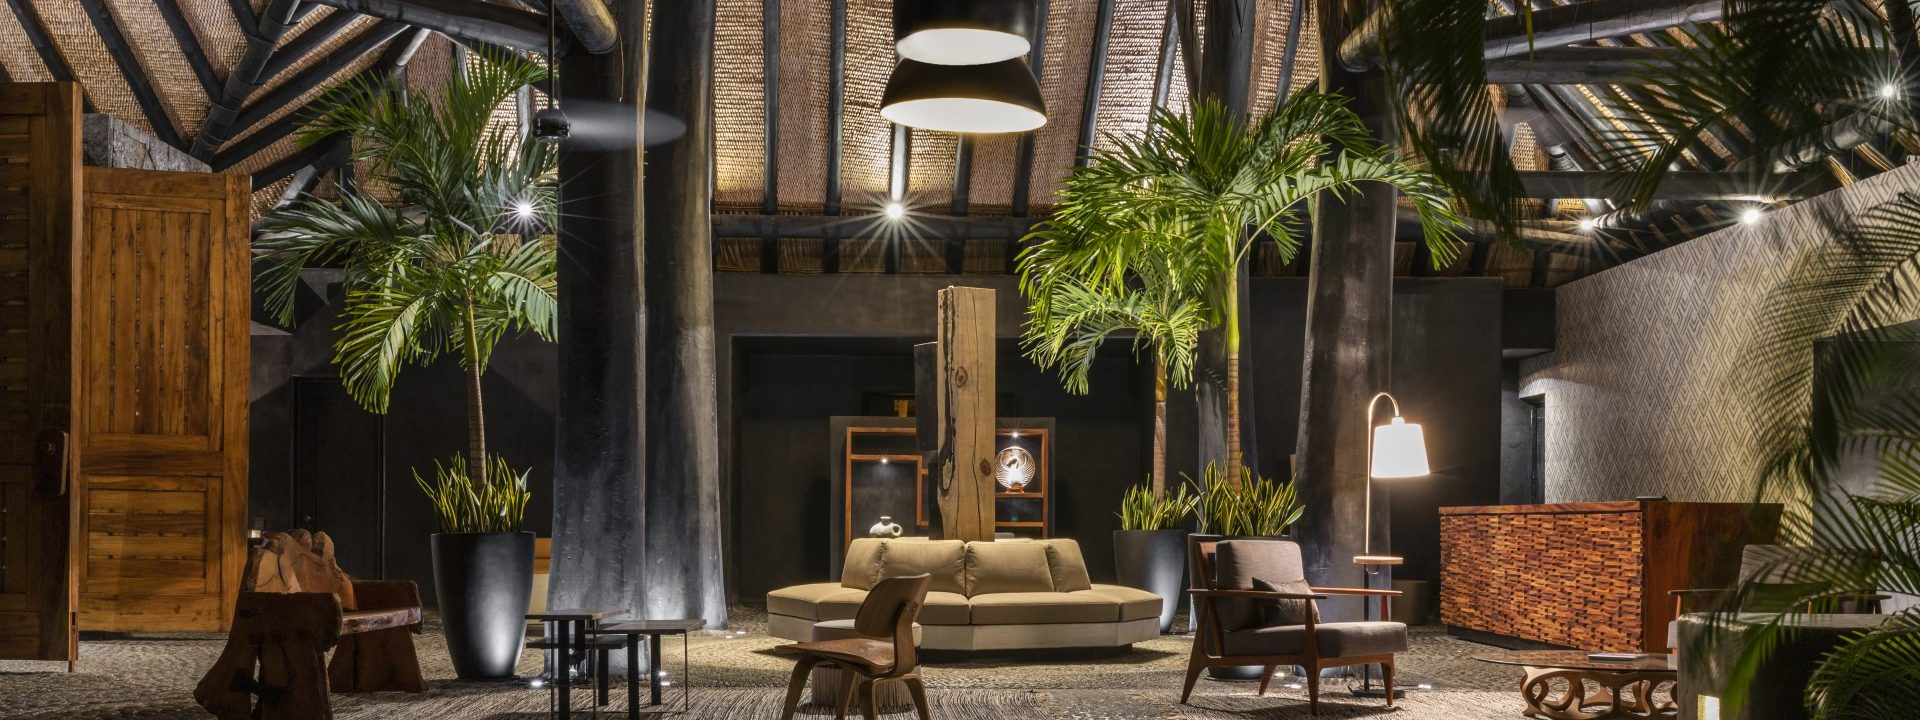 The chic Thompson Zihuatanejo is now open and it's looking fine